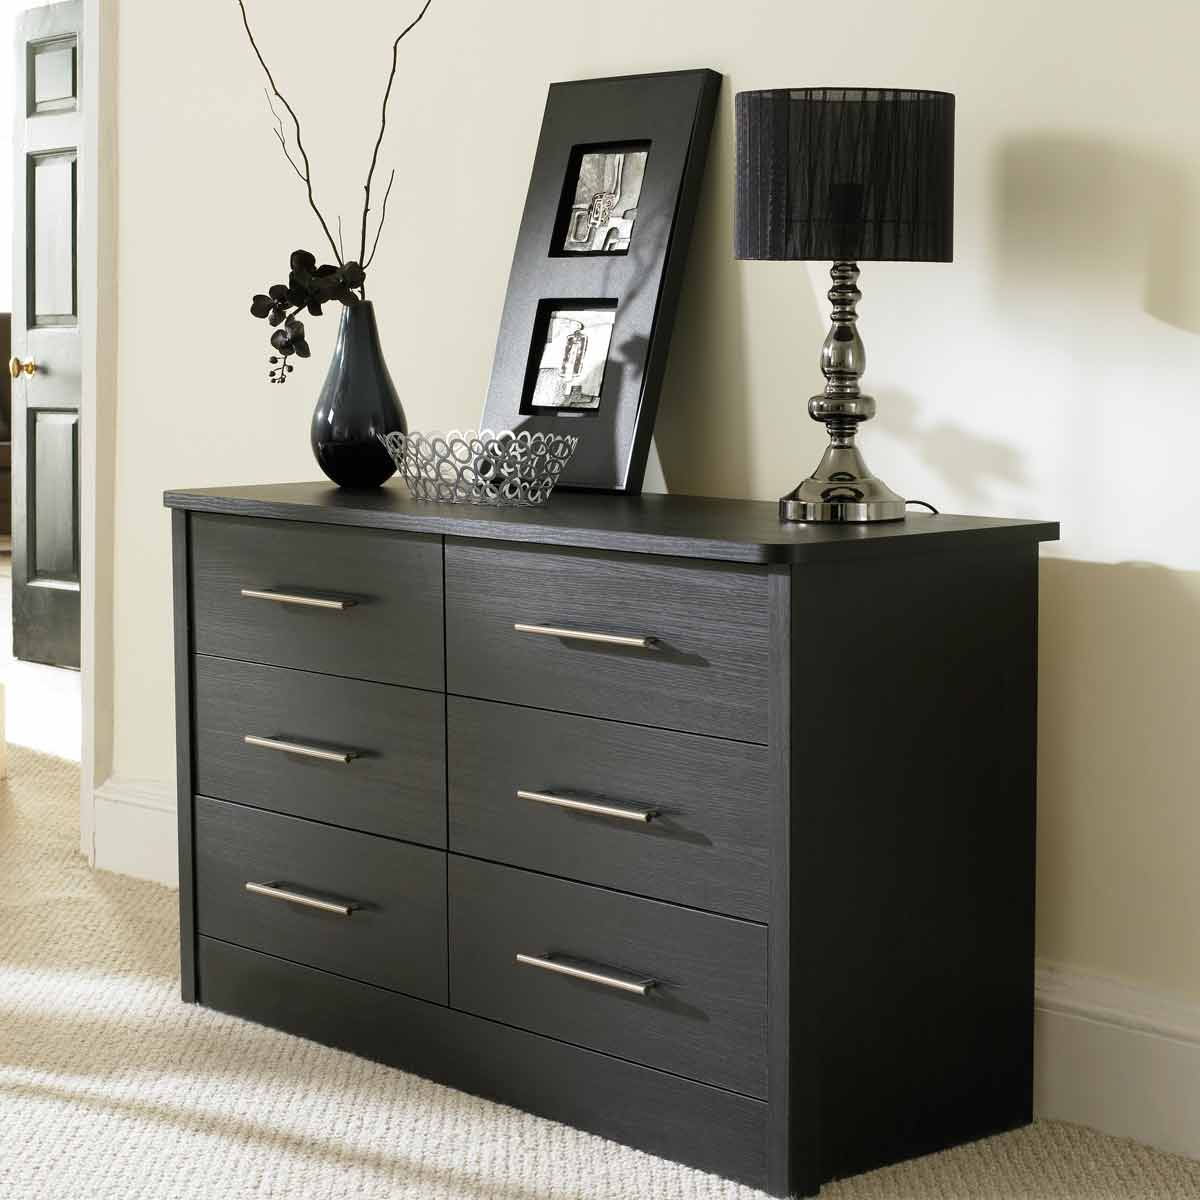 Wal Mart Dresser | Drawer Chest | Target Chest of Drawers